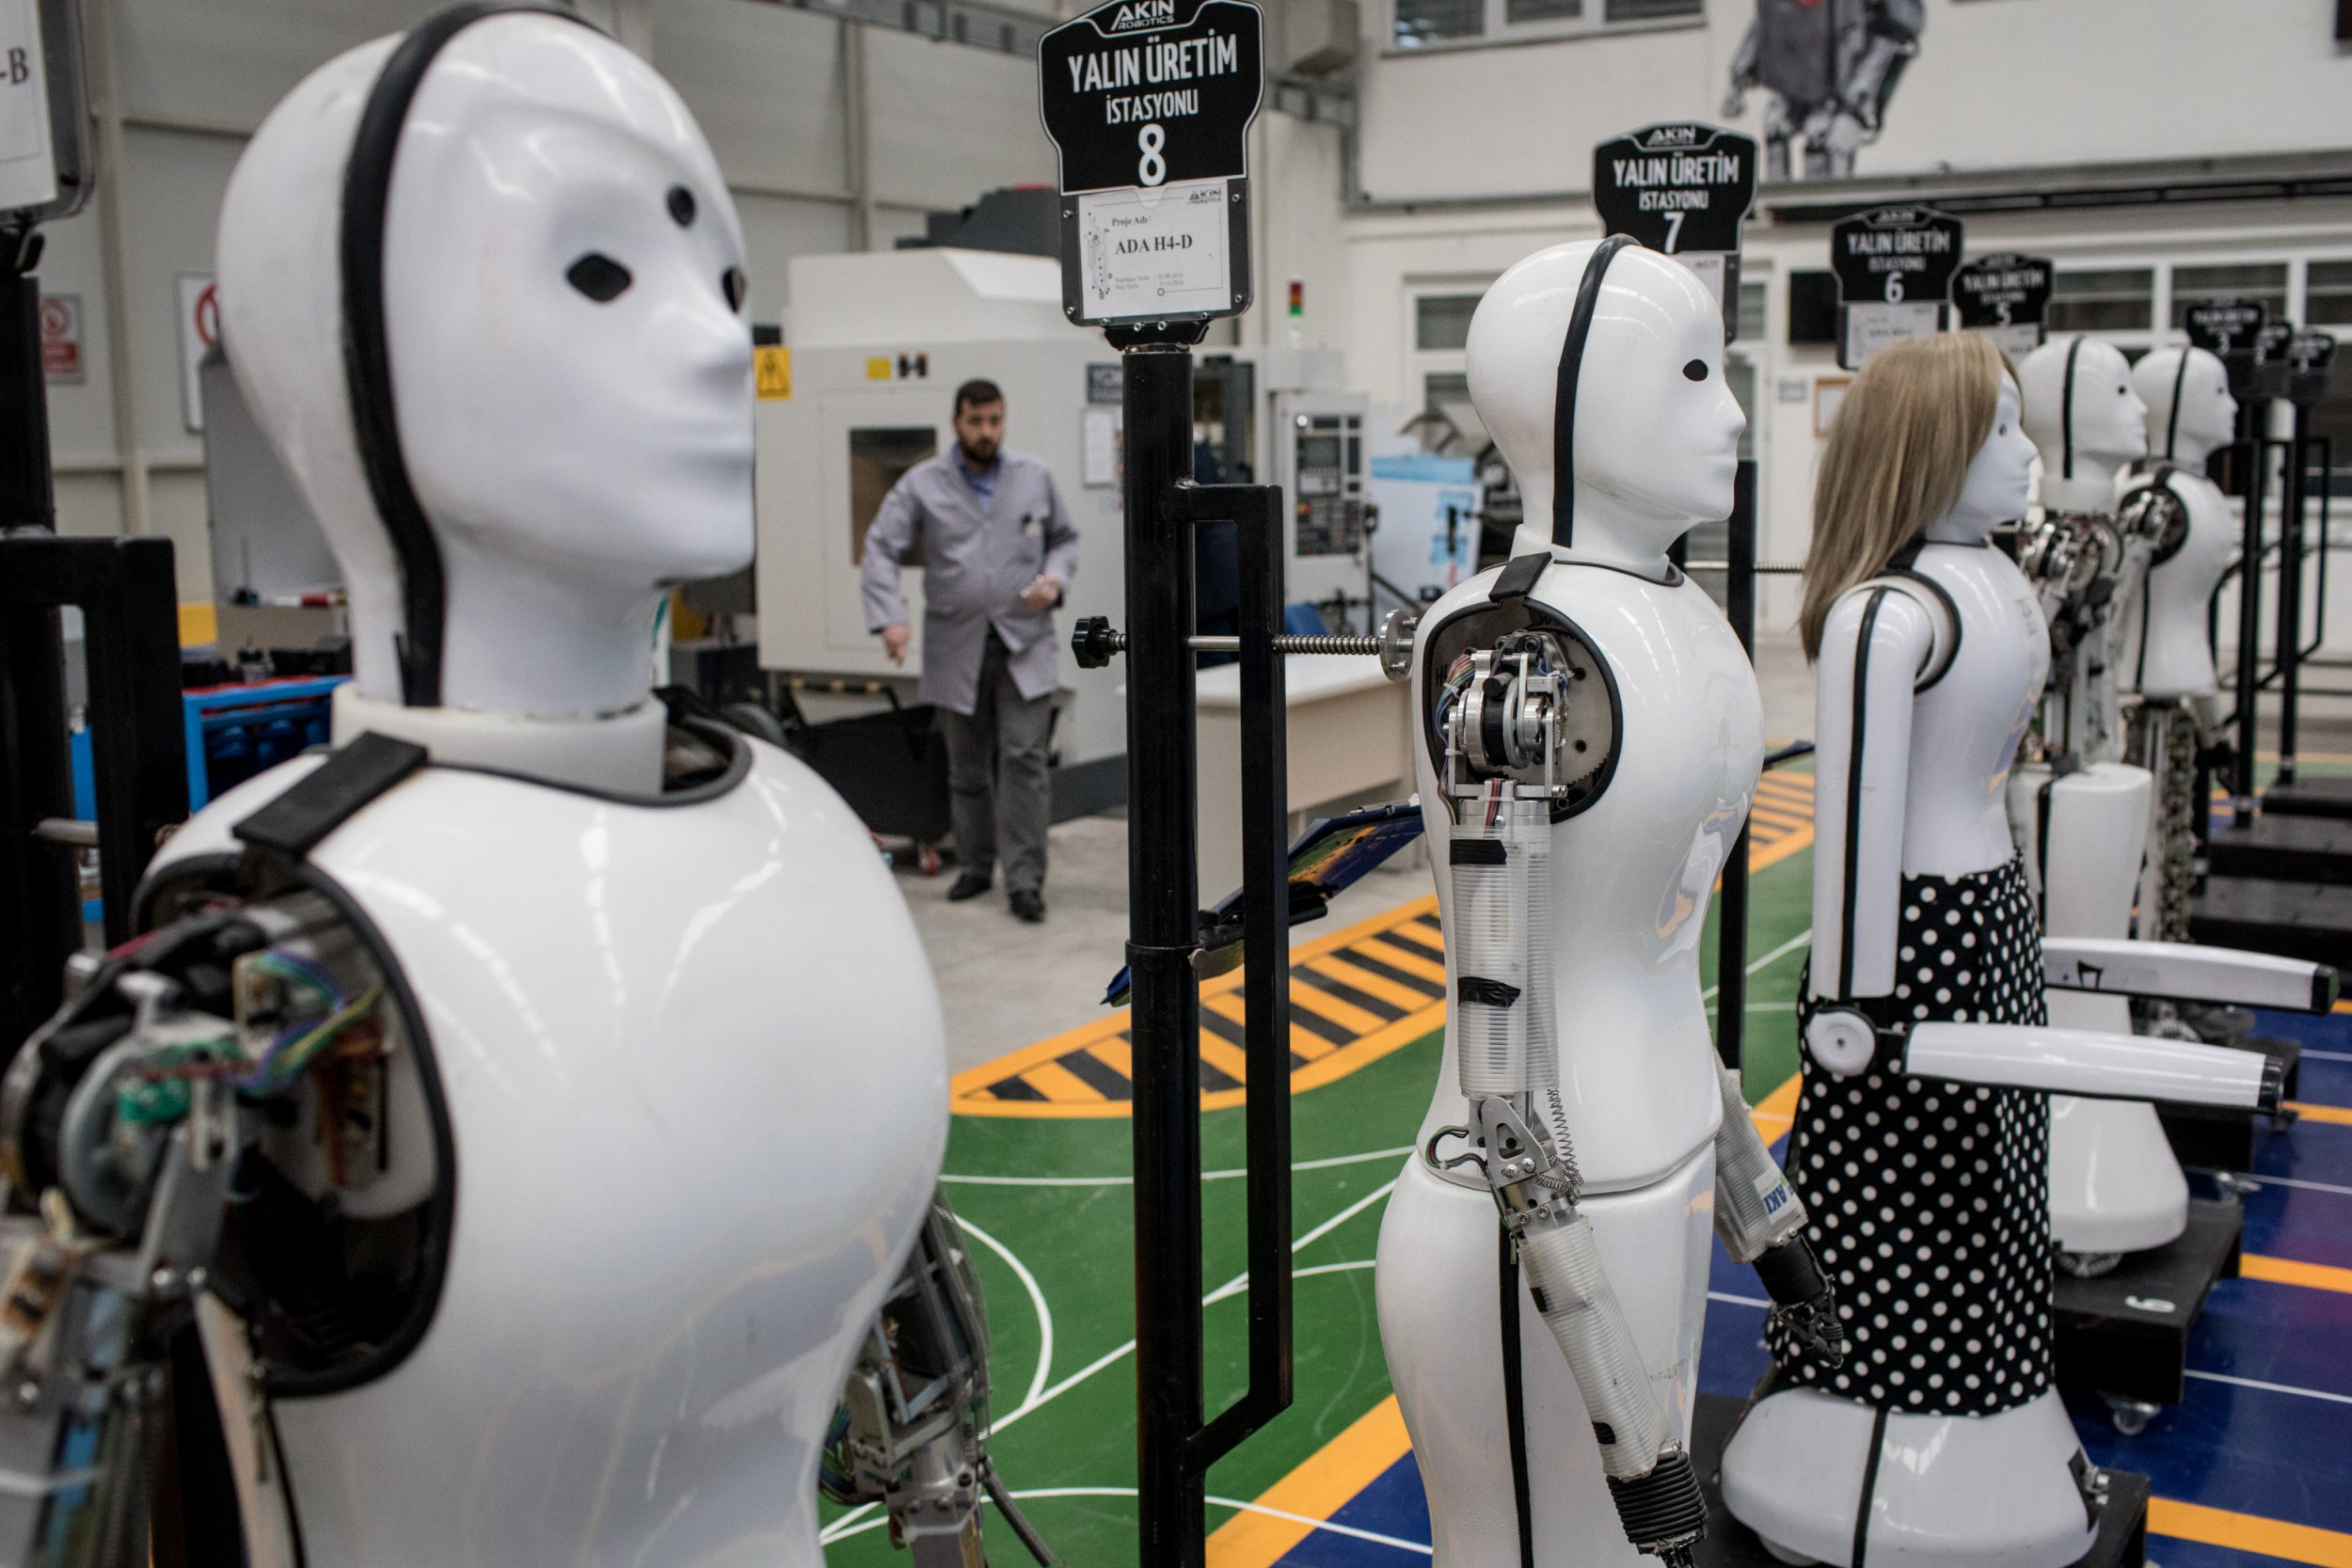 KONYA, TURKEY - MARCH 15: Early test robots are seen on display at the Akin Robotics factory on March 15, 2018 in Konya, Turkey. Akin Robotics is Turkey's first humanoid robotics factory and one of the first in the world to start mass production. The GH5 model and a new model the ADA Mini are programmed to work in shopping malls, airports, hospitals and homes. The robots are able to speak, recognize faces, use the internet and process what they see, hear and smell. The ADA Mini will be deployed at Istanbul's new third airport to open later this year, to assist people with checkin and airport information. (Photo by Chris McGrath/Getty Images)